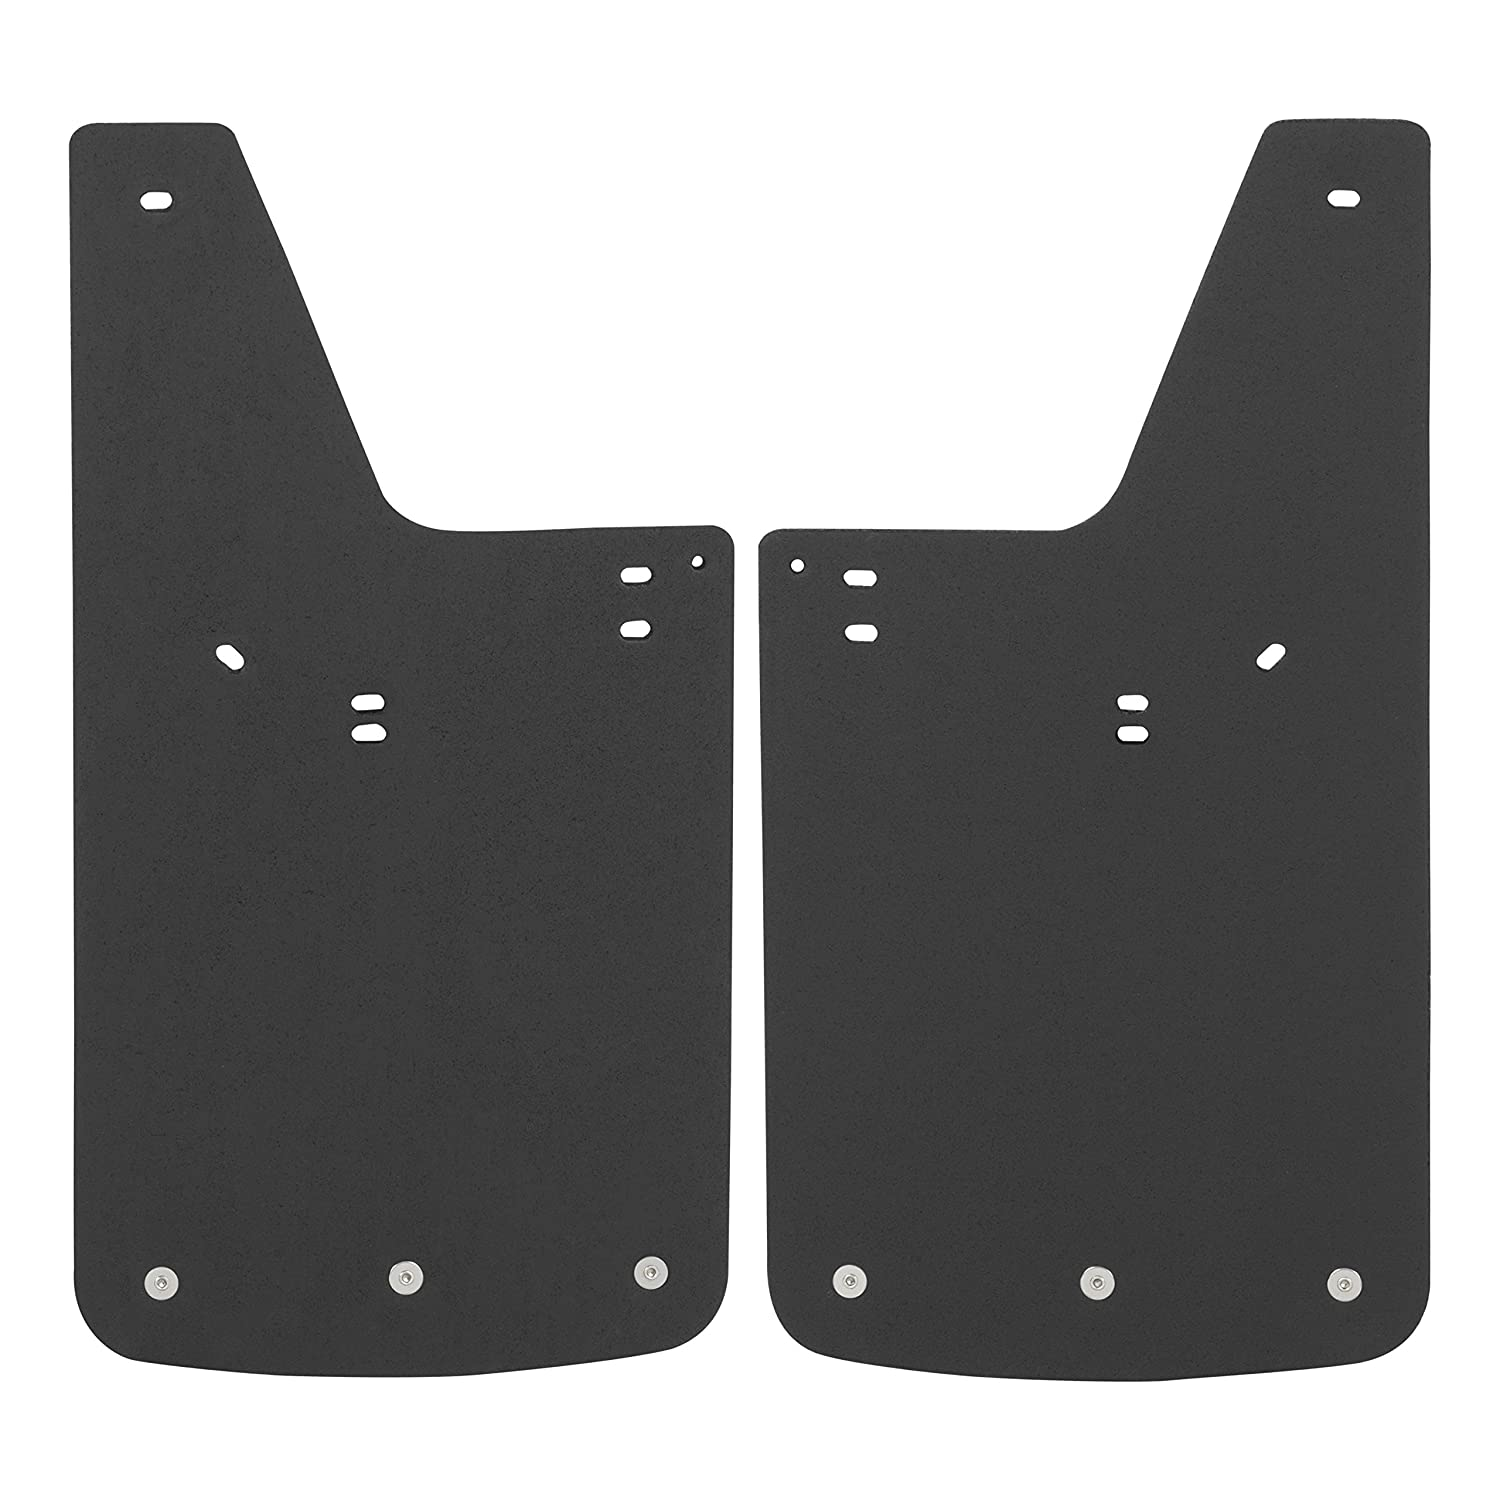 Lincoln Mark LT LUVERNE 250423 Front or Rear 12 x 23-Inch Textured Rubber Mud Guards Black 12 x 23 for for Select Ford F-150